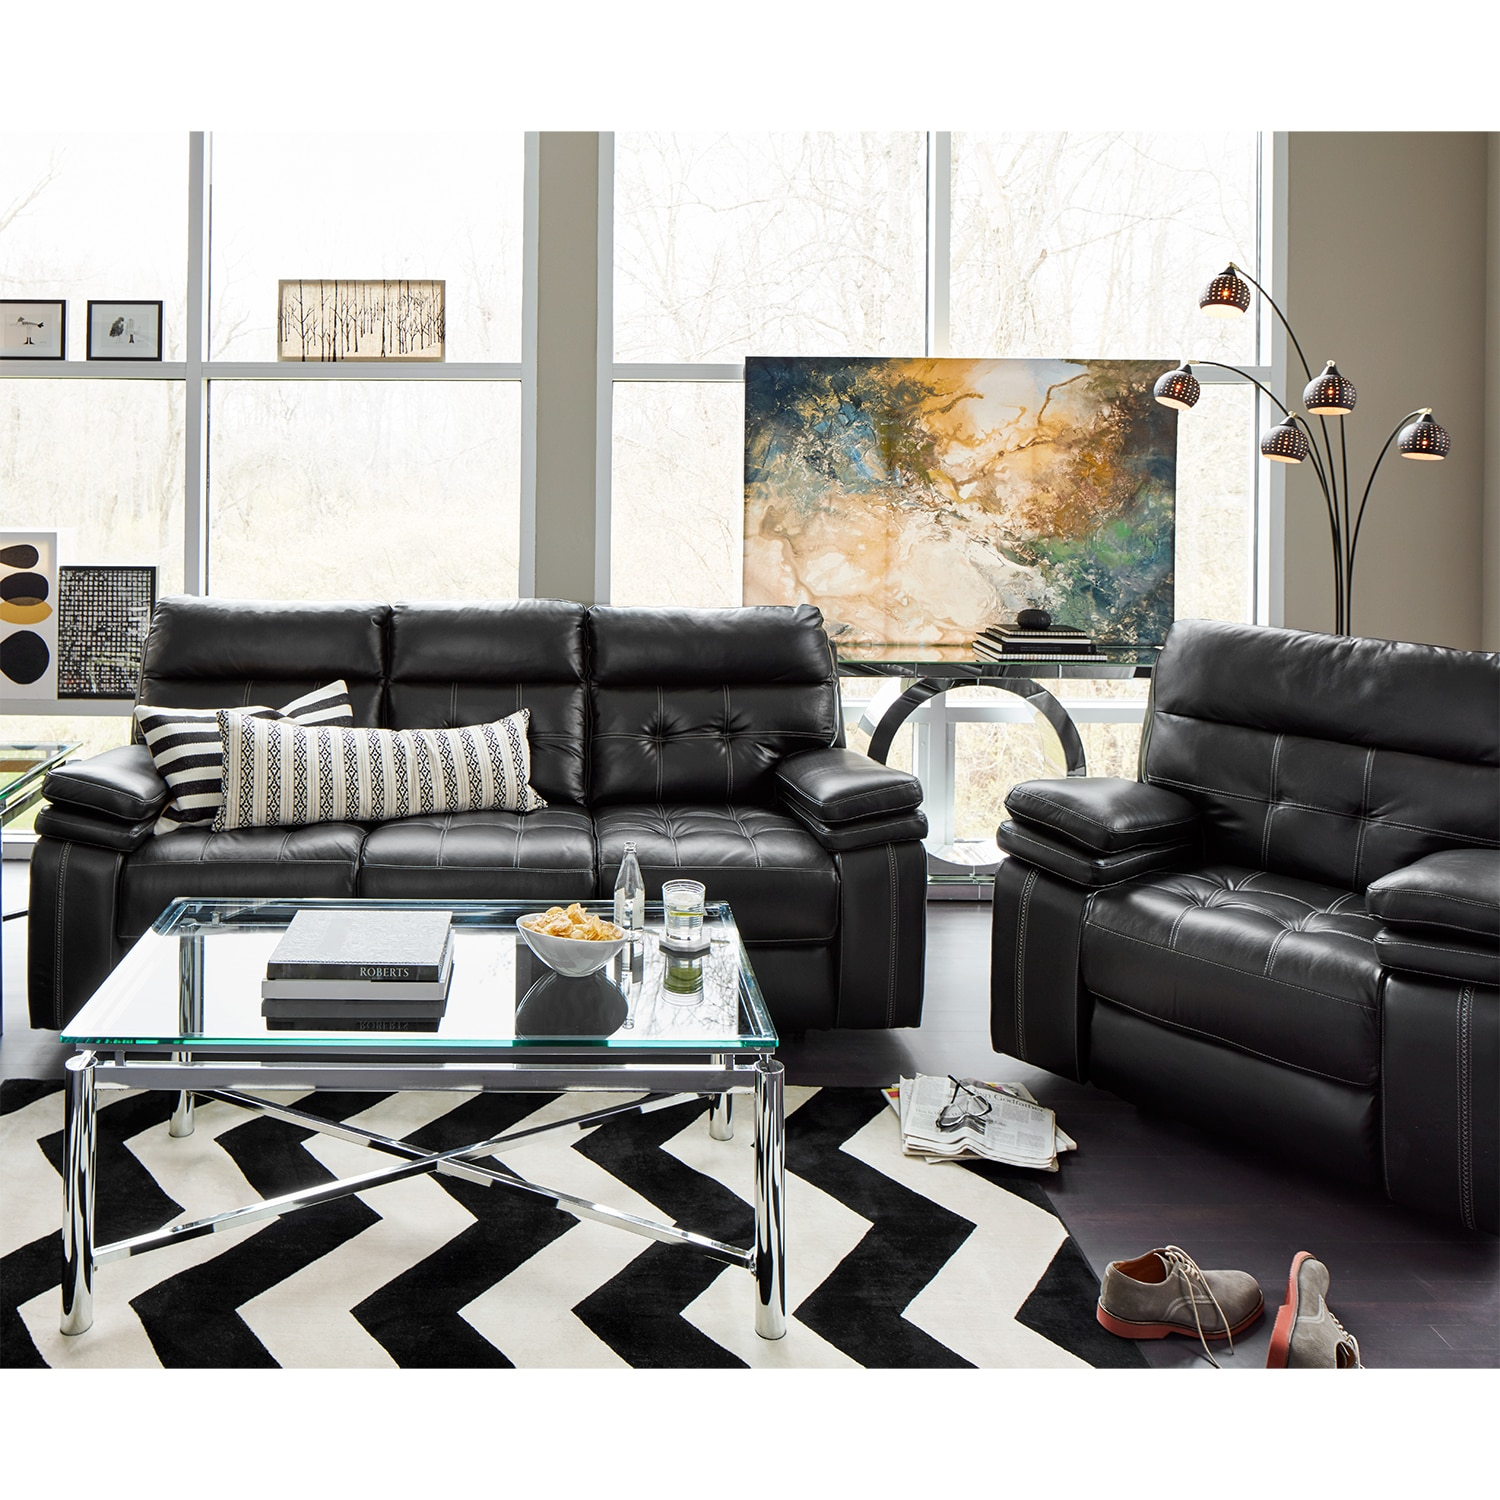 Living Room Furniture - Brisco Power Reclining Sofa and Glider Recliner Set - Black